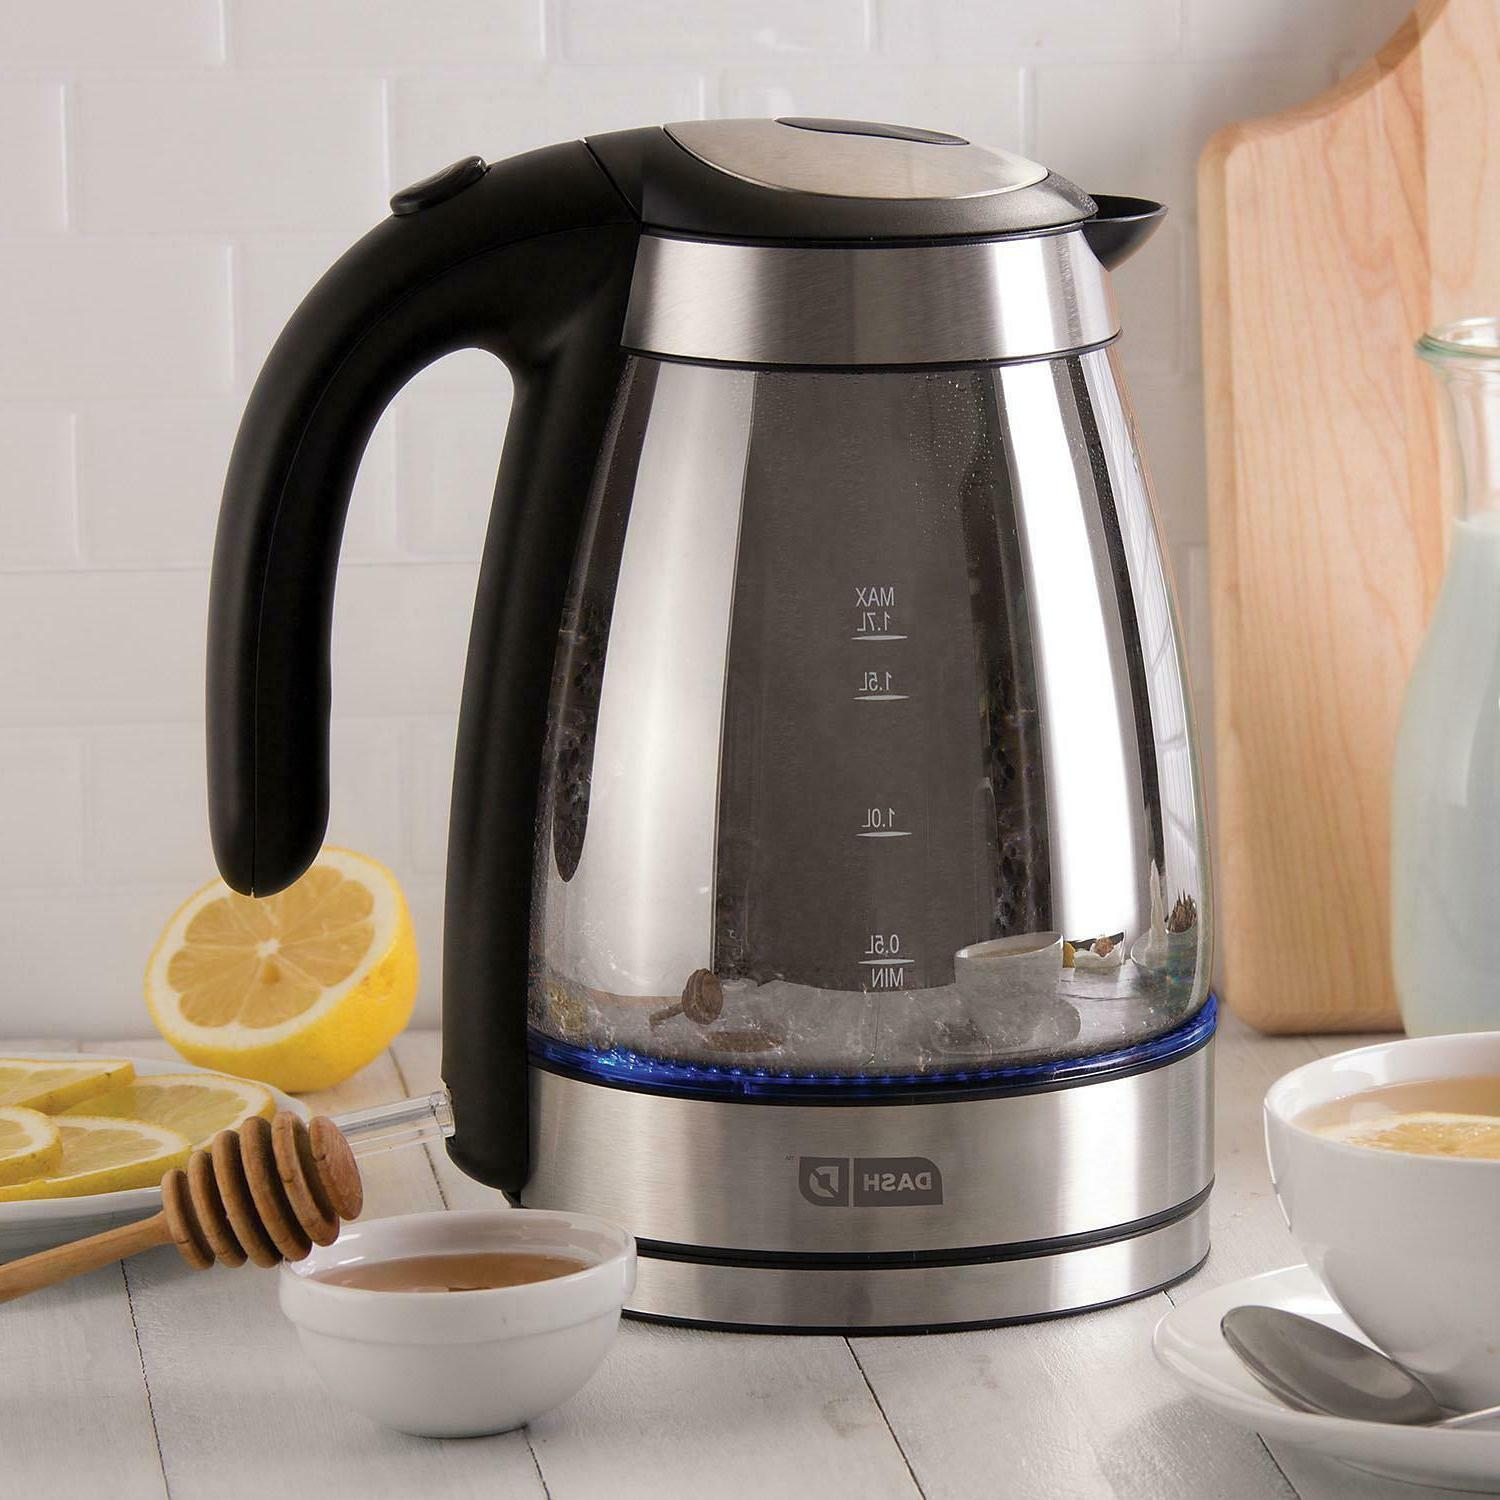 Illusion Mirrored Electric Kettle, Cordless